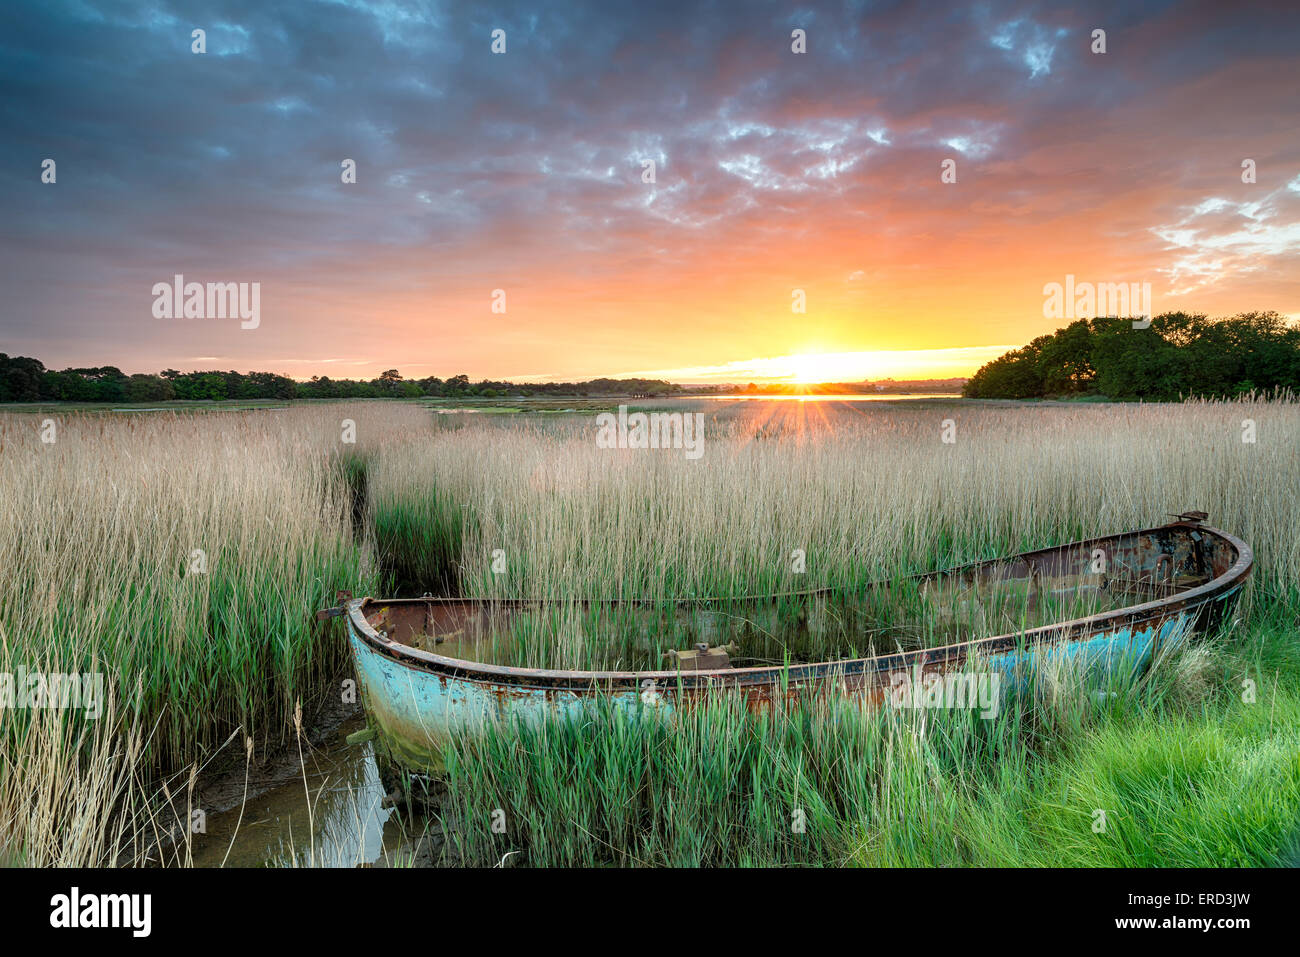 An old boat in reeds at Poole harbour on the Dorset coast - Stock Image